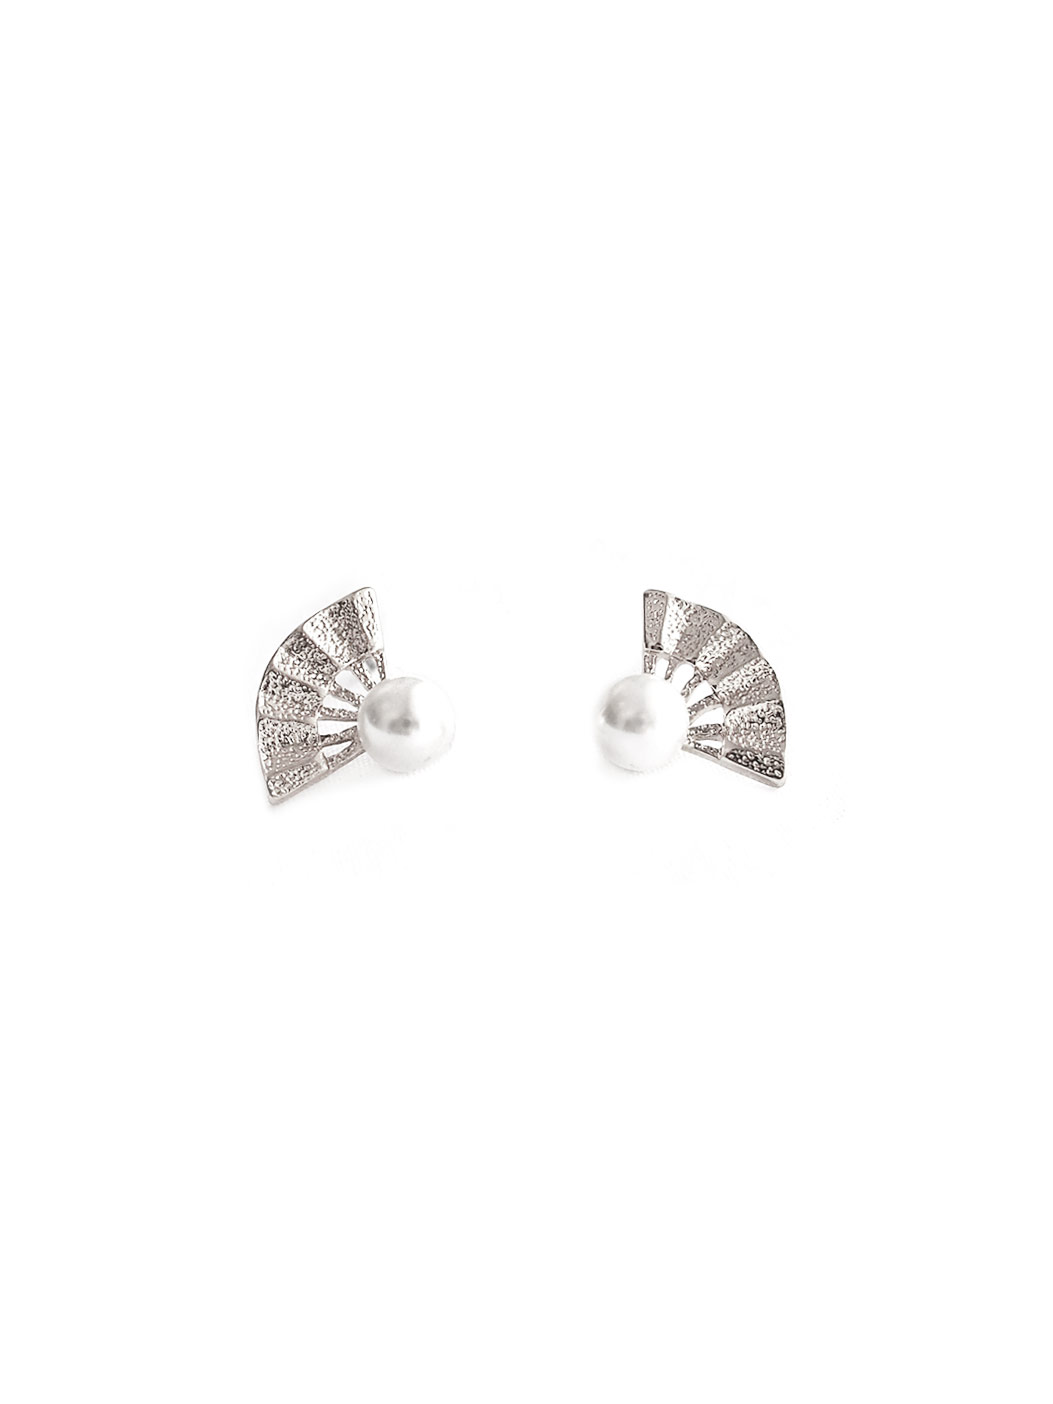 ACC380-Lyn-Fan-Earrings-in-Silver-1